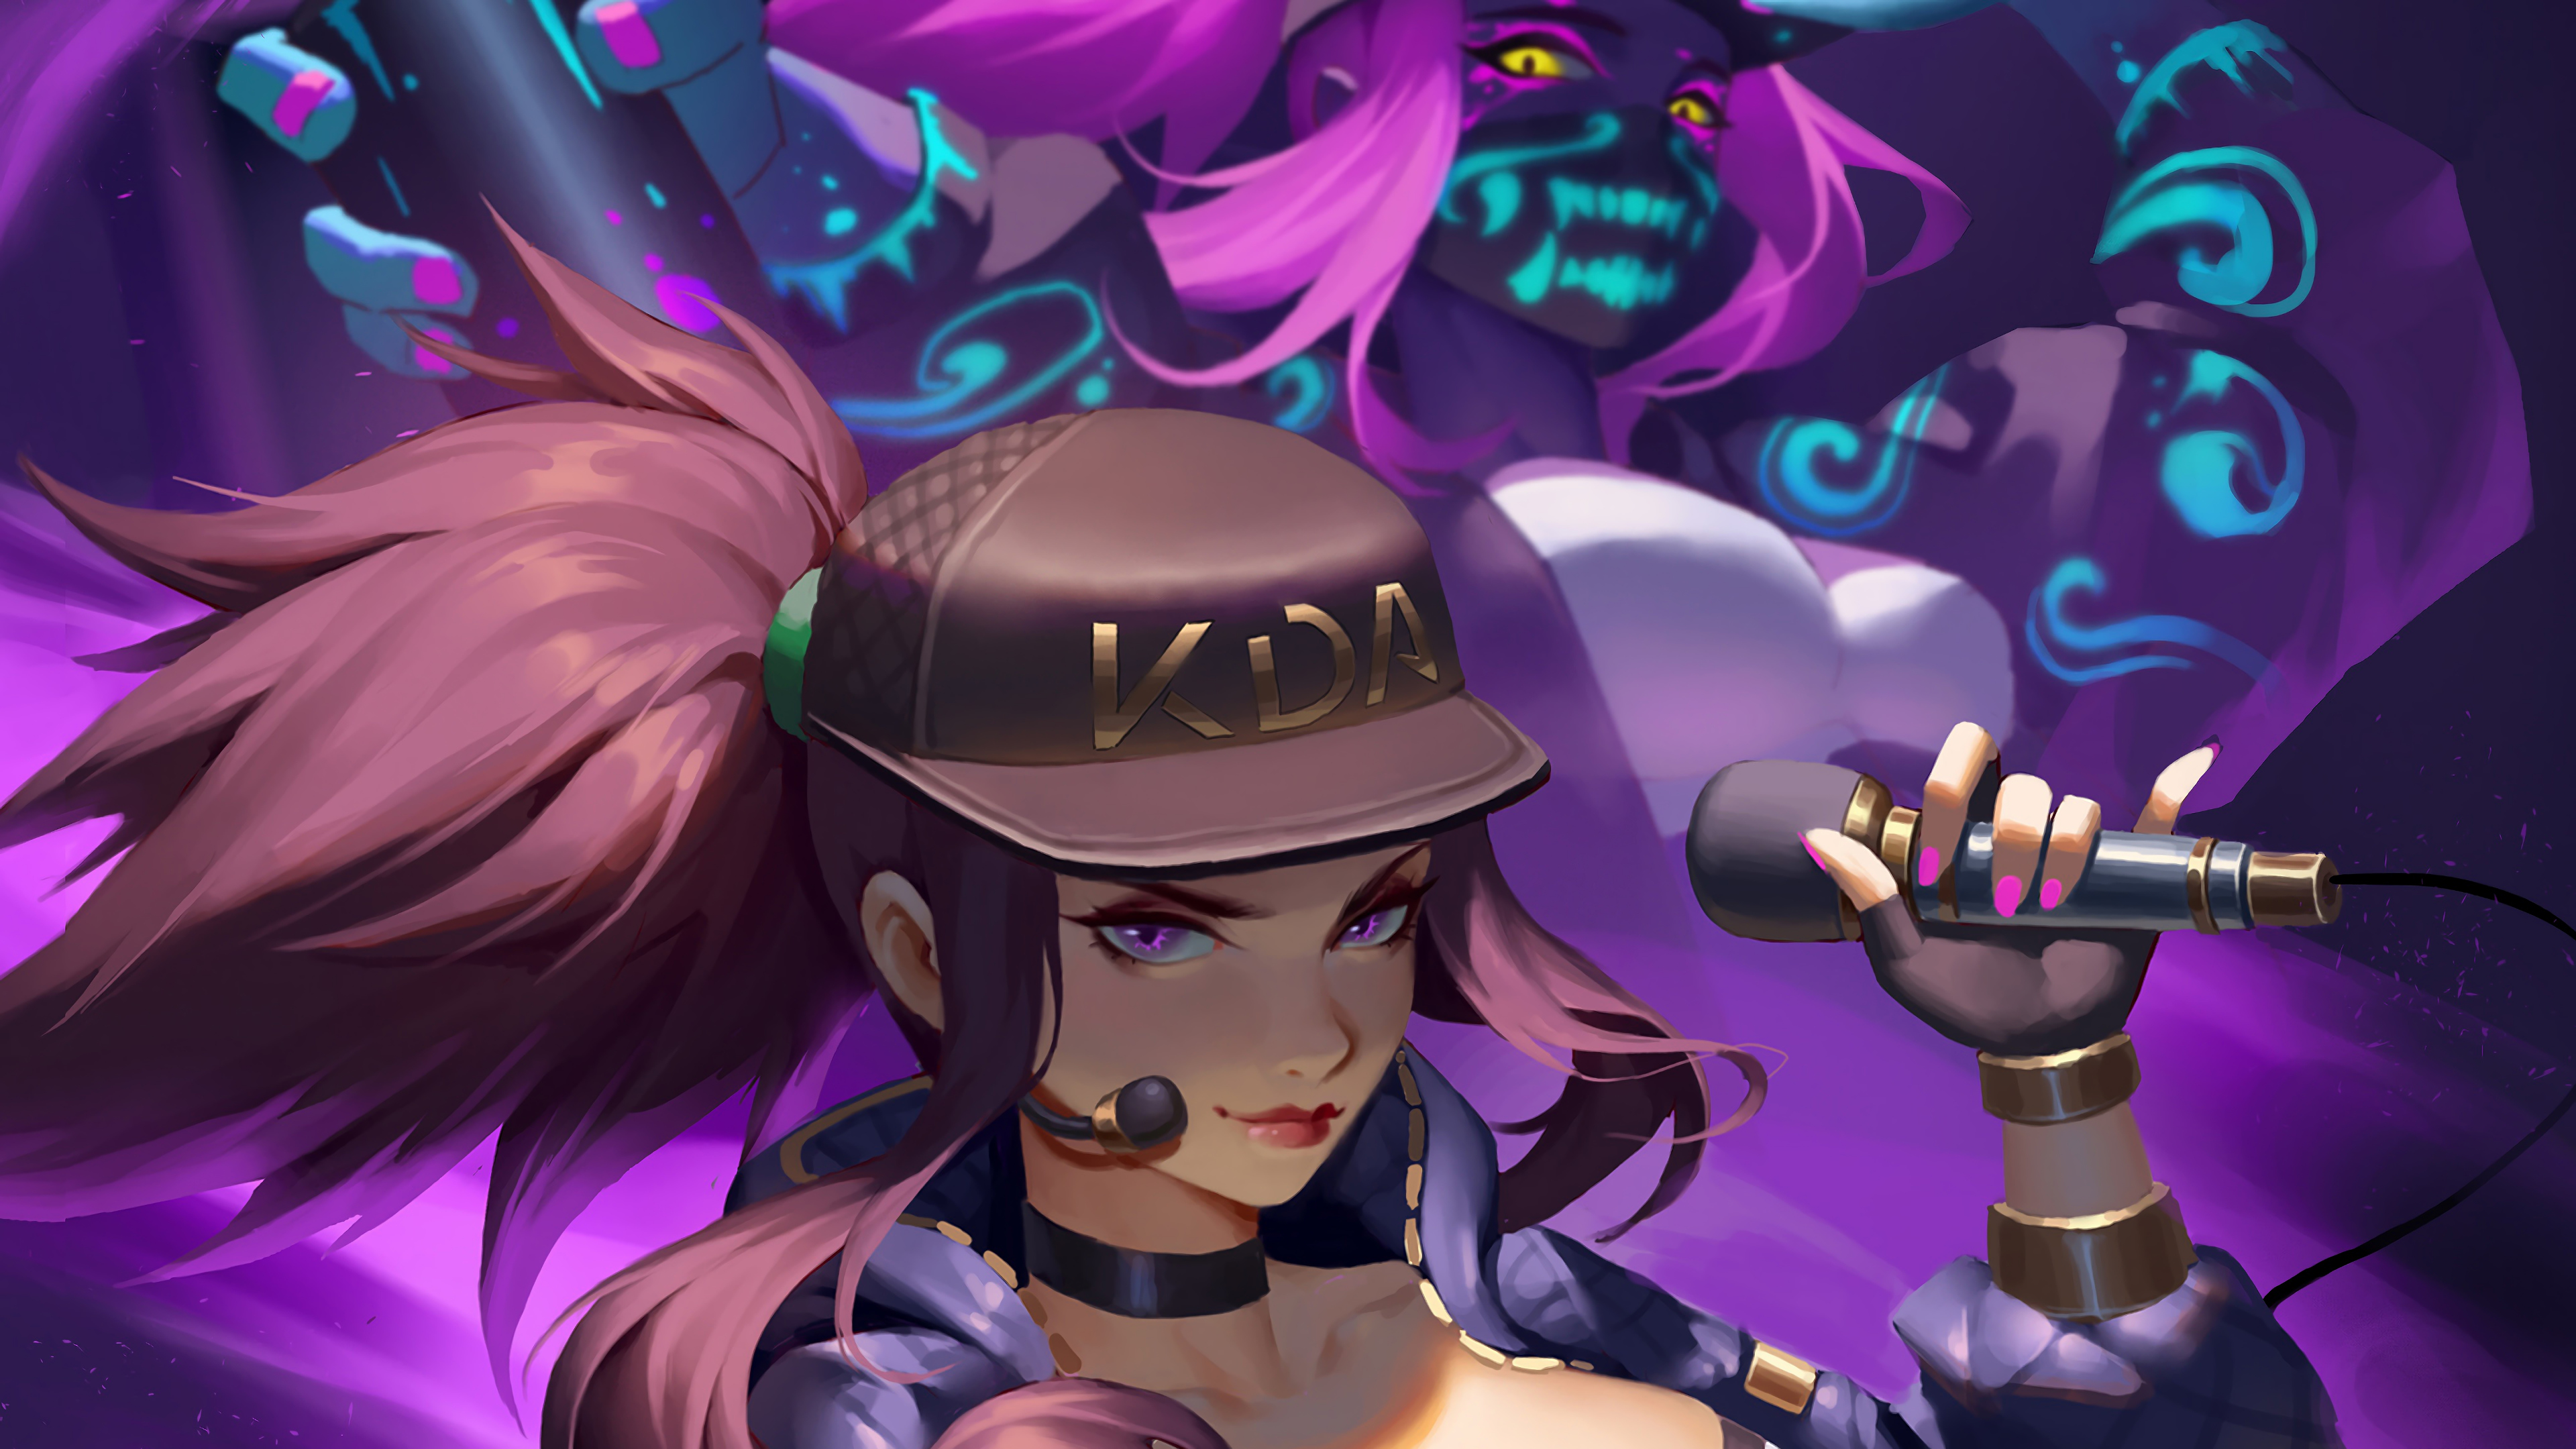 akali k da popstar lol league of legends lol 1574105110 - Akali K/DA Popstar LoL League of Legends lol - league of legends, K/DA Akali, K/DA - League of Legends, Akali